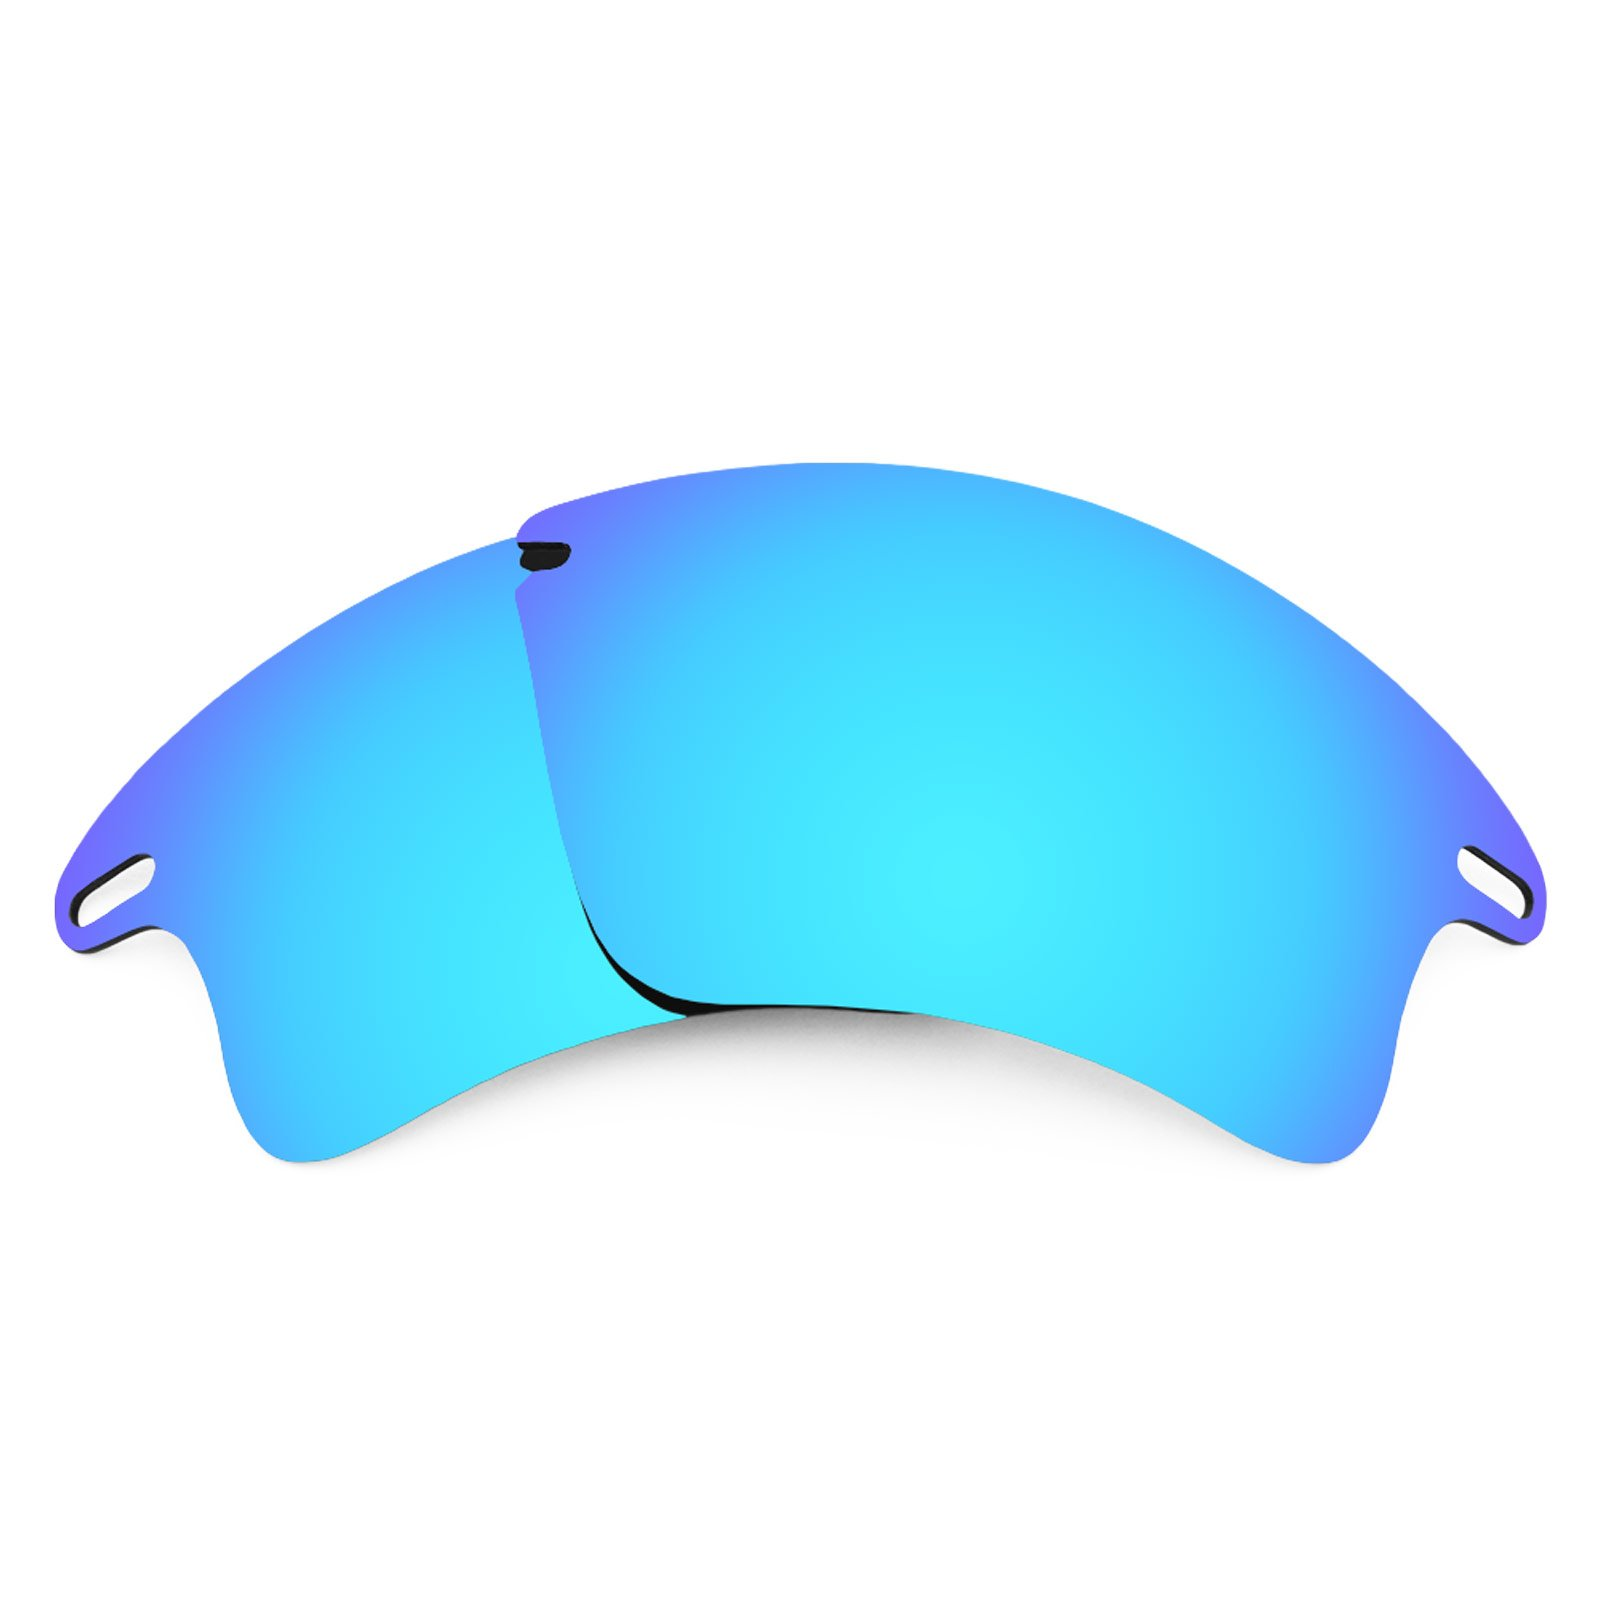 Revant Polarized Replacement Lenses for Oakley Fast Jacket XL Ice Blue MirrorShield by Revant